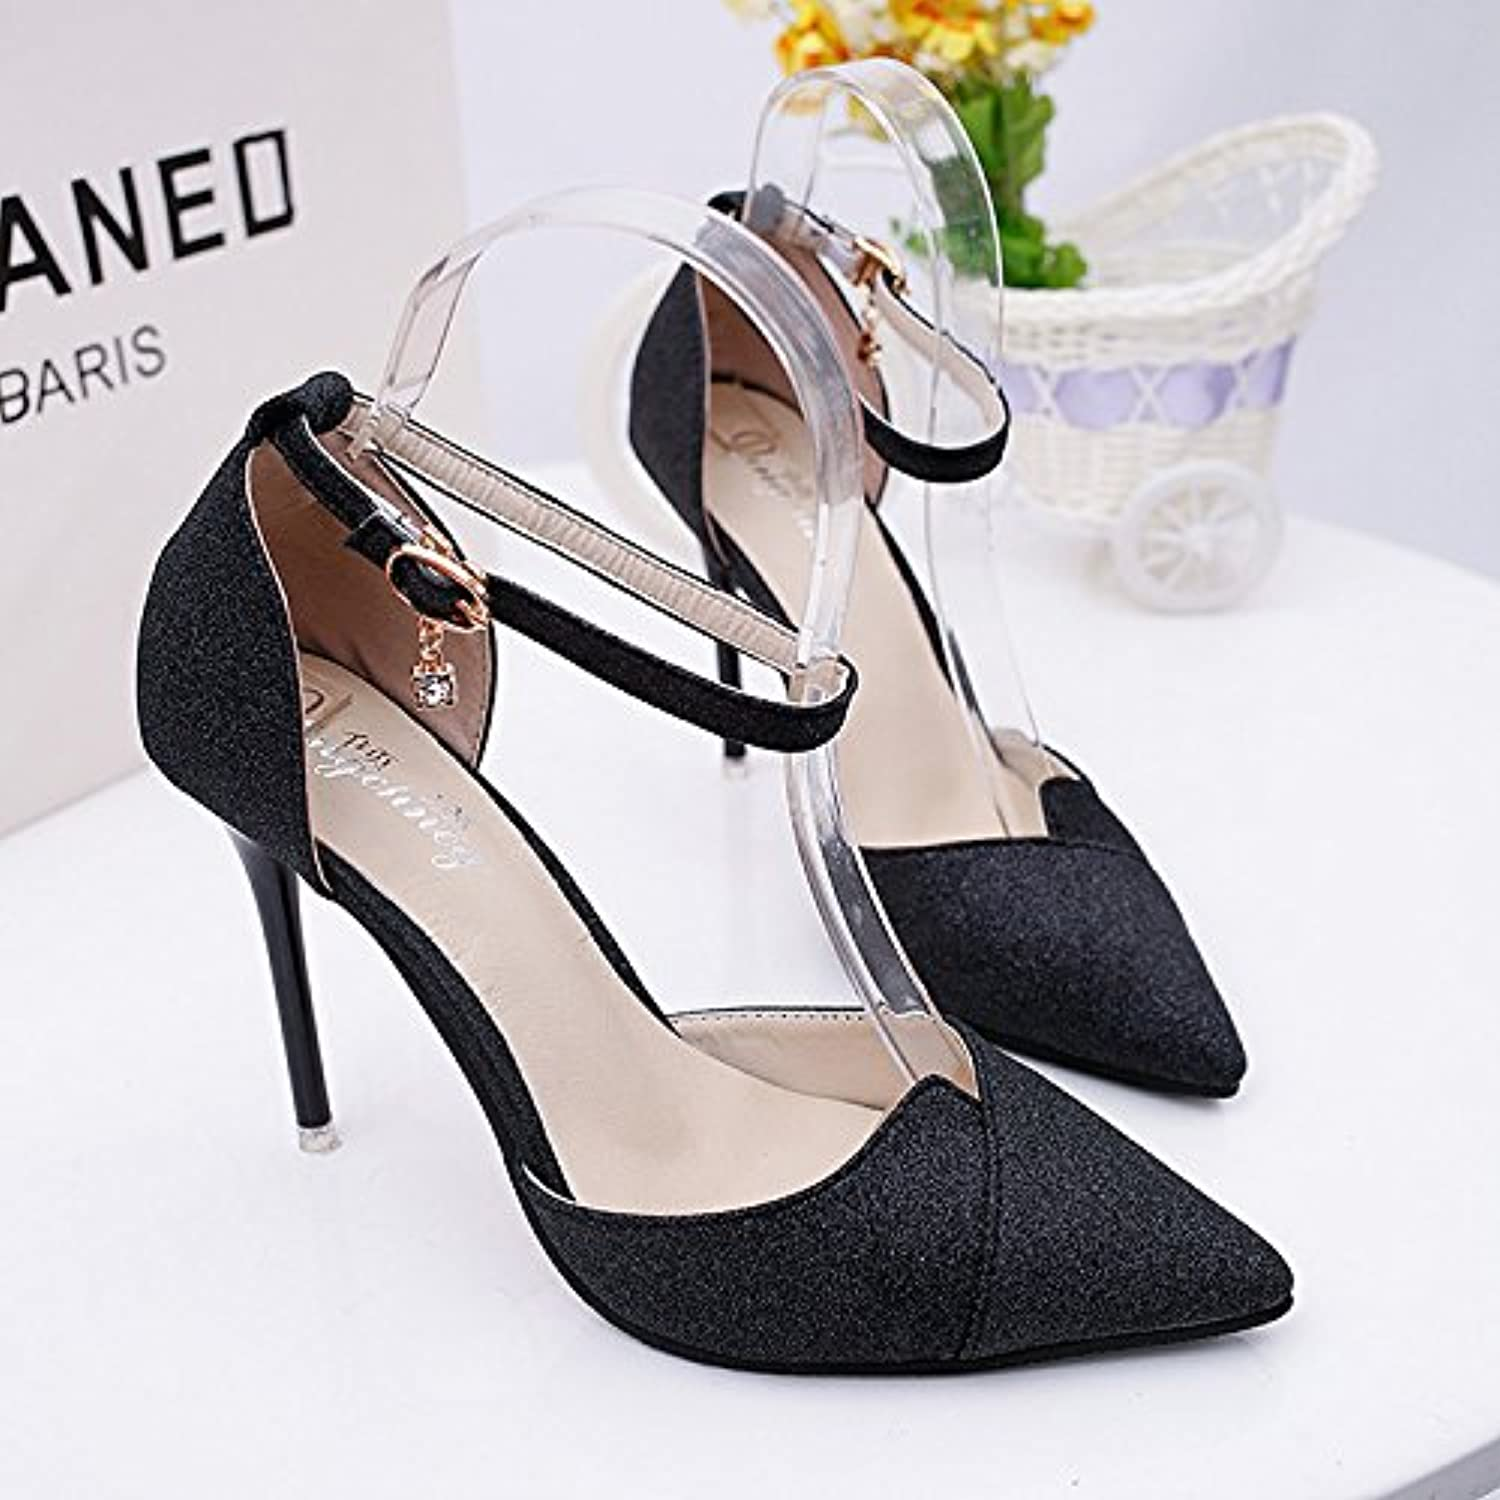 JKFESX Water Drill High Heel Sandals Spring and Summer 2019 Pure color Women's Sandals High Heel Fashion Women's shoes